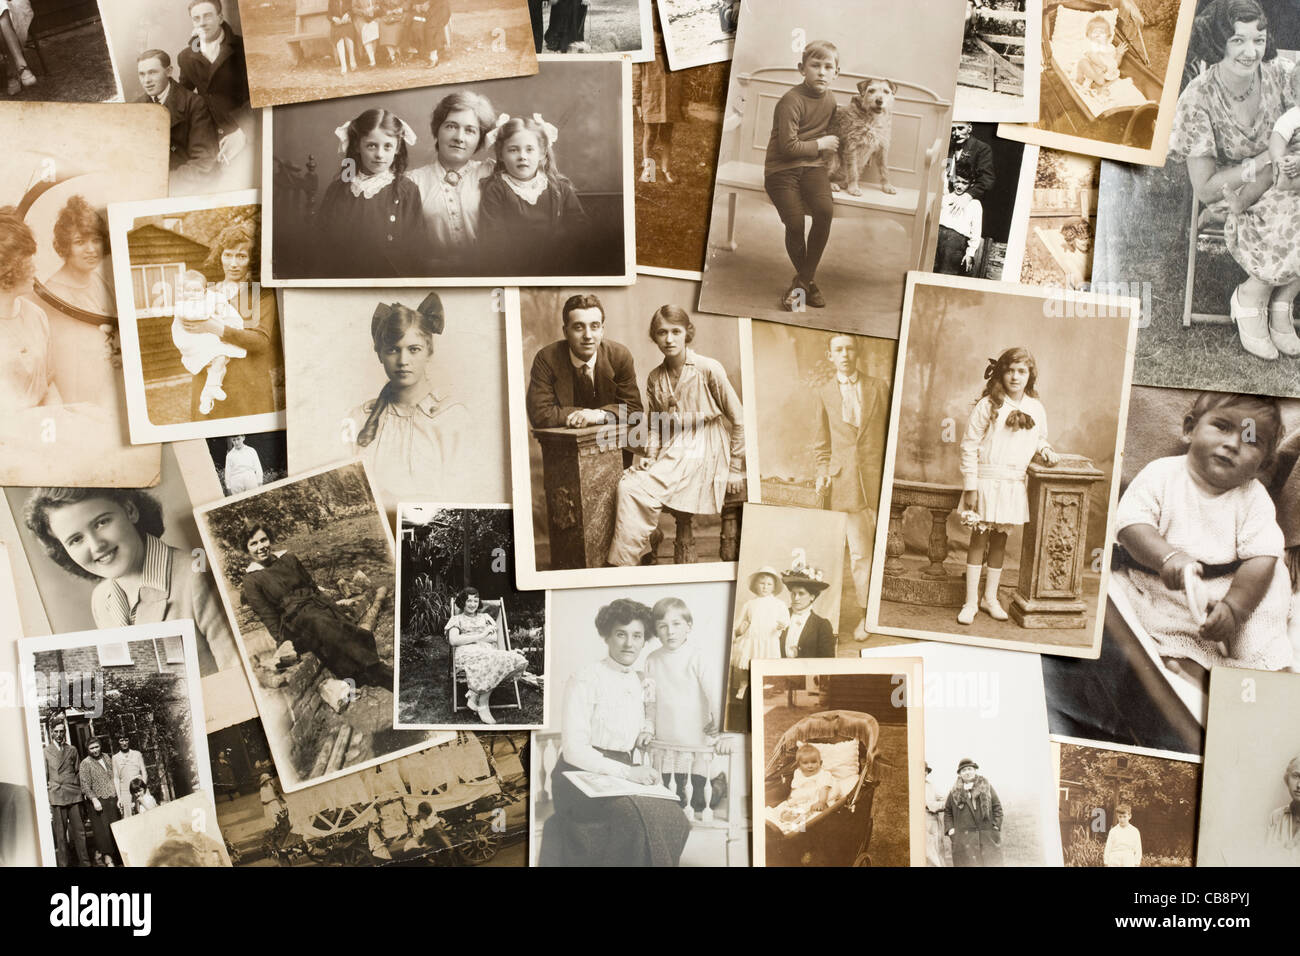 Old photographs. - Stock Image